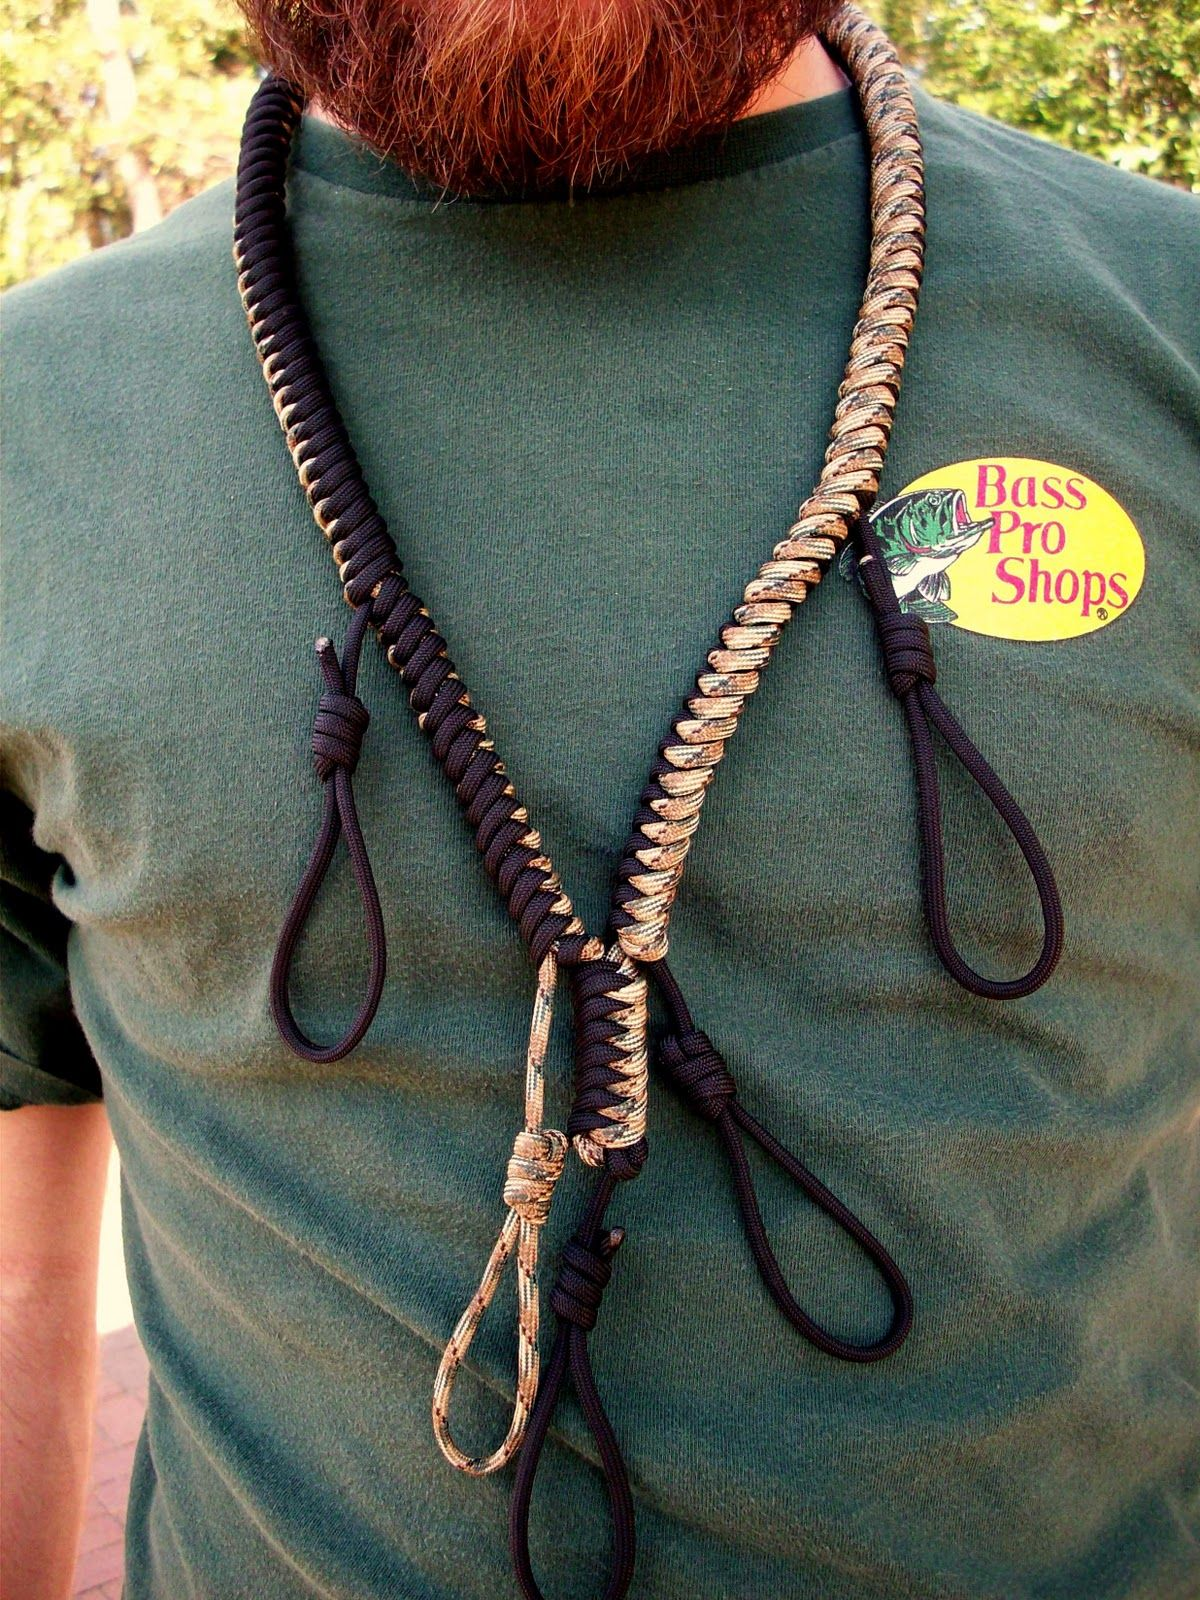 how to make a lanyard with paracord